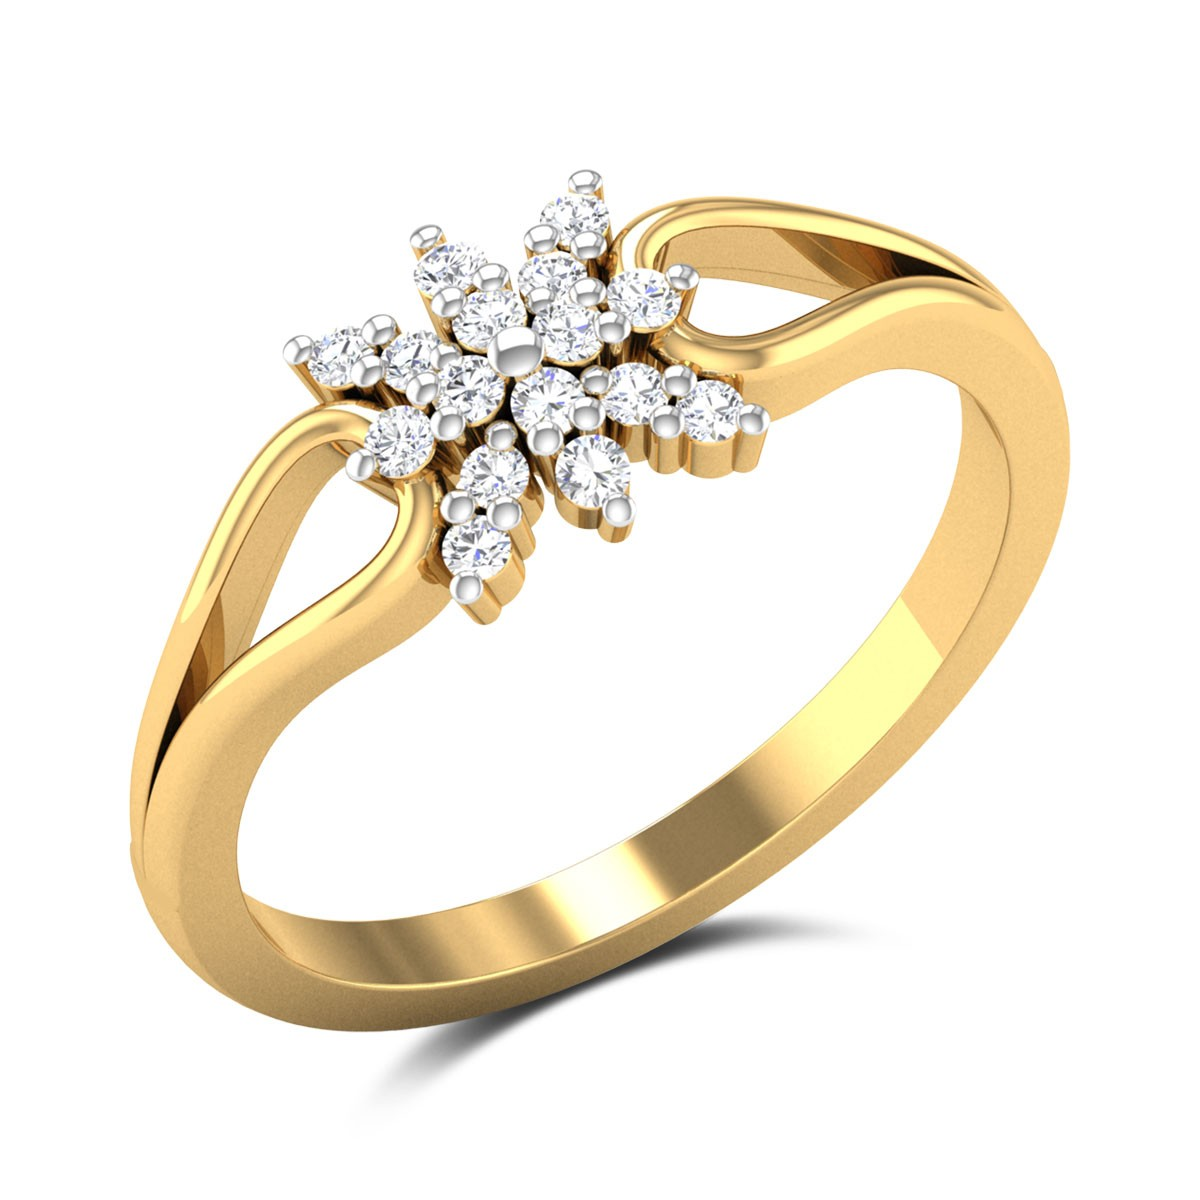 Safiyah Diamond Ring